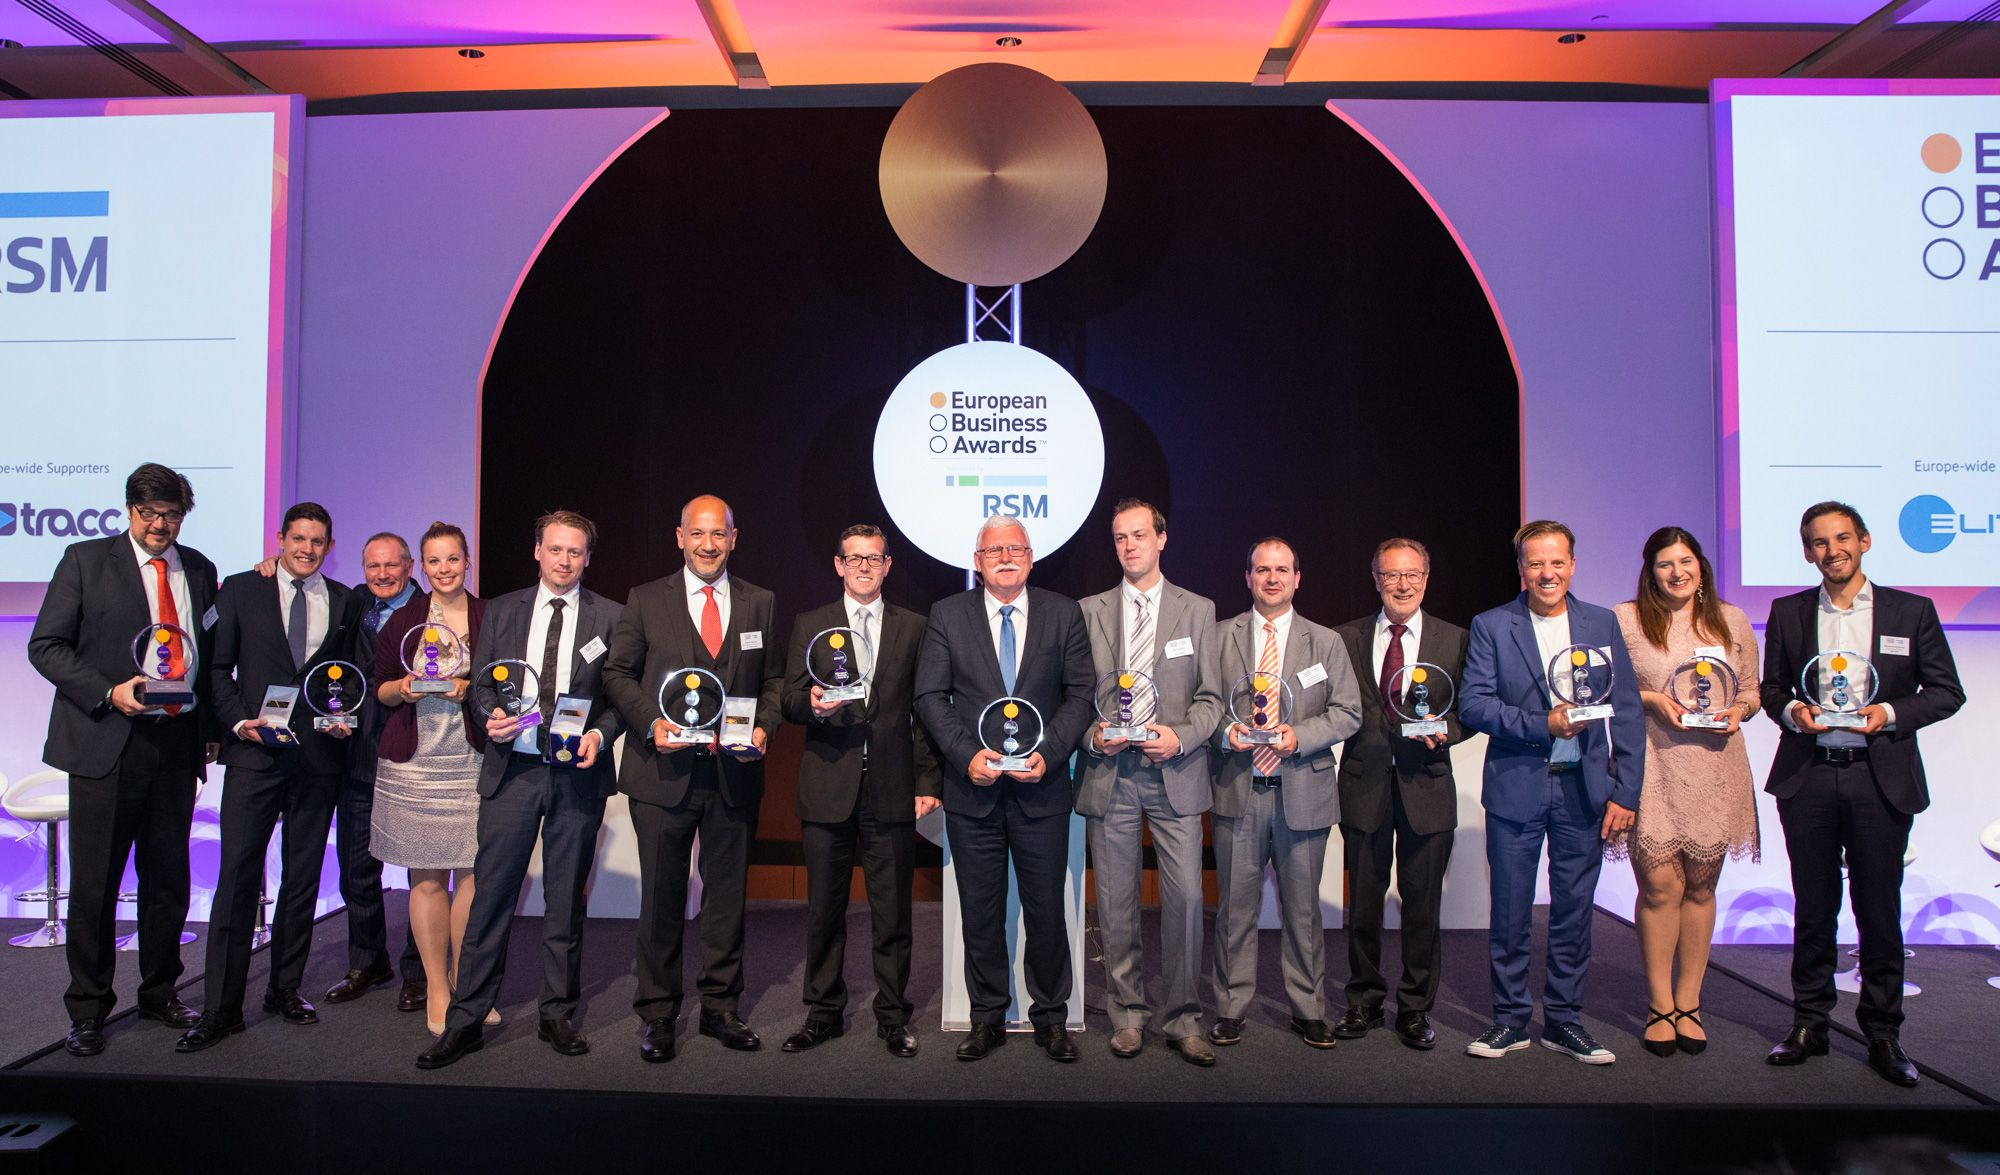 Actiu Group, Marine Instruments and Leroy Merlin España triumph in the Eurpean Business Awards 2017